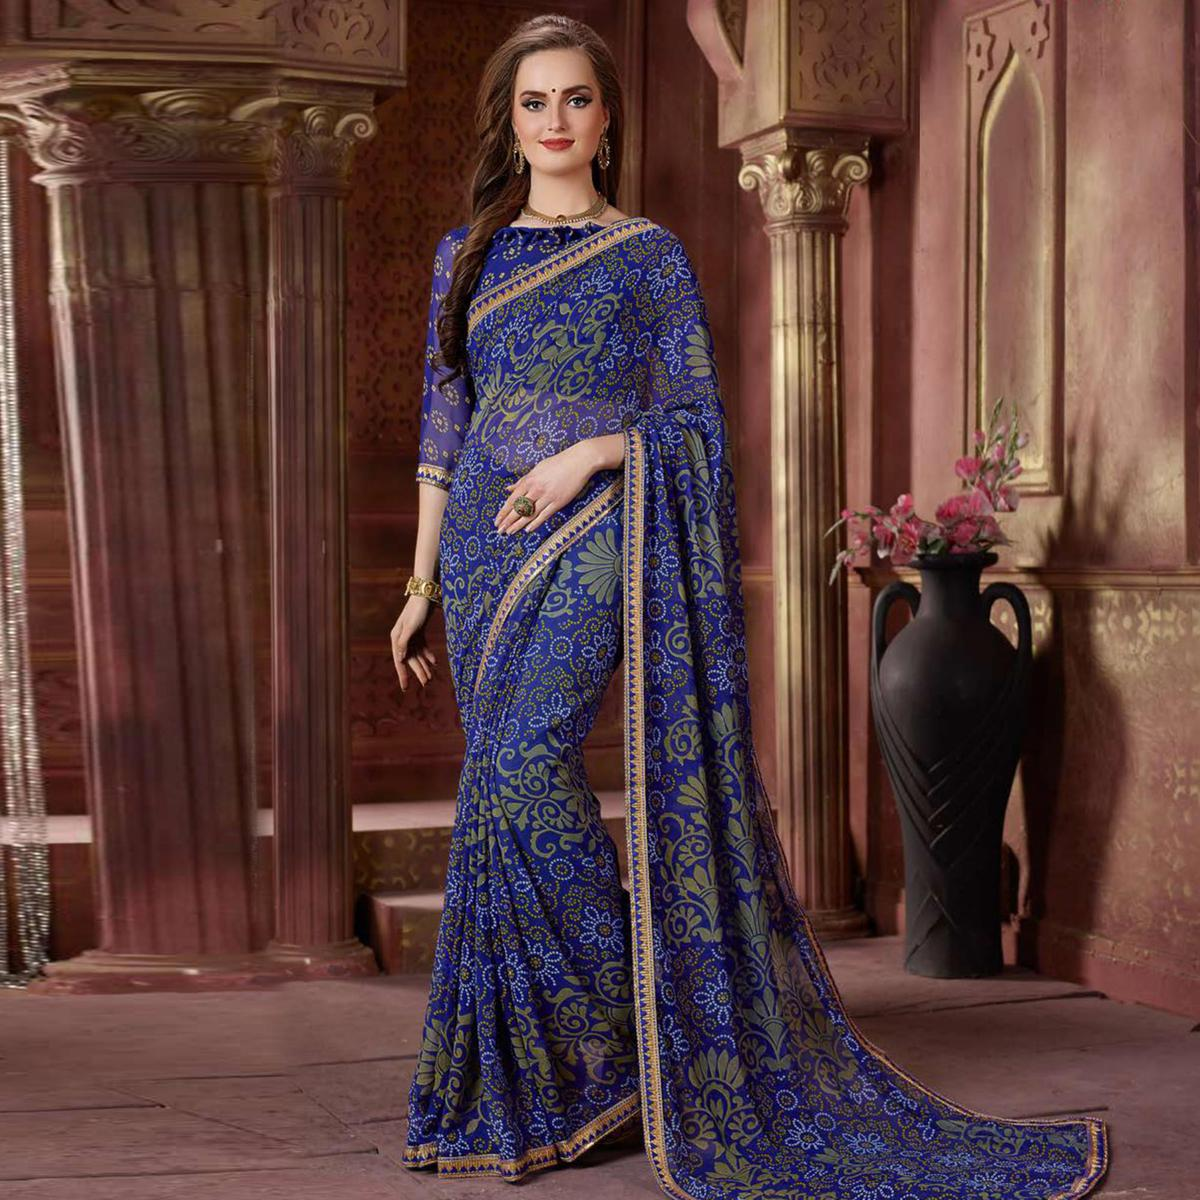 Radiant Blue Colored Casual Wear Bandhani Printed Georgette Saree